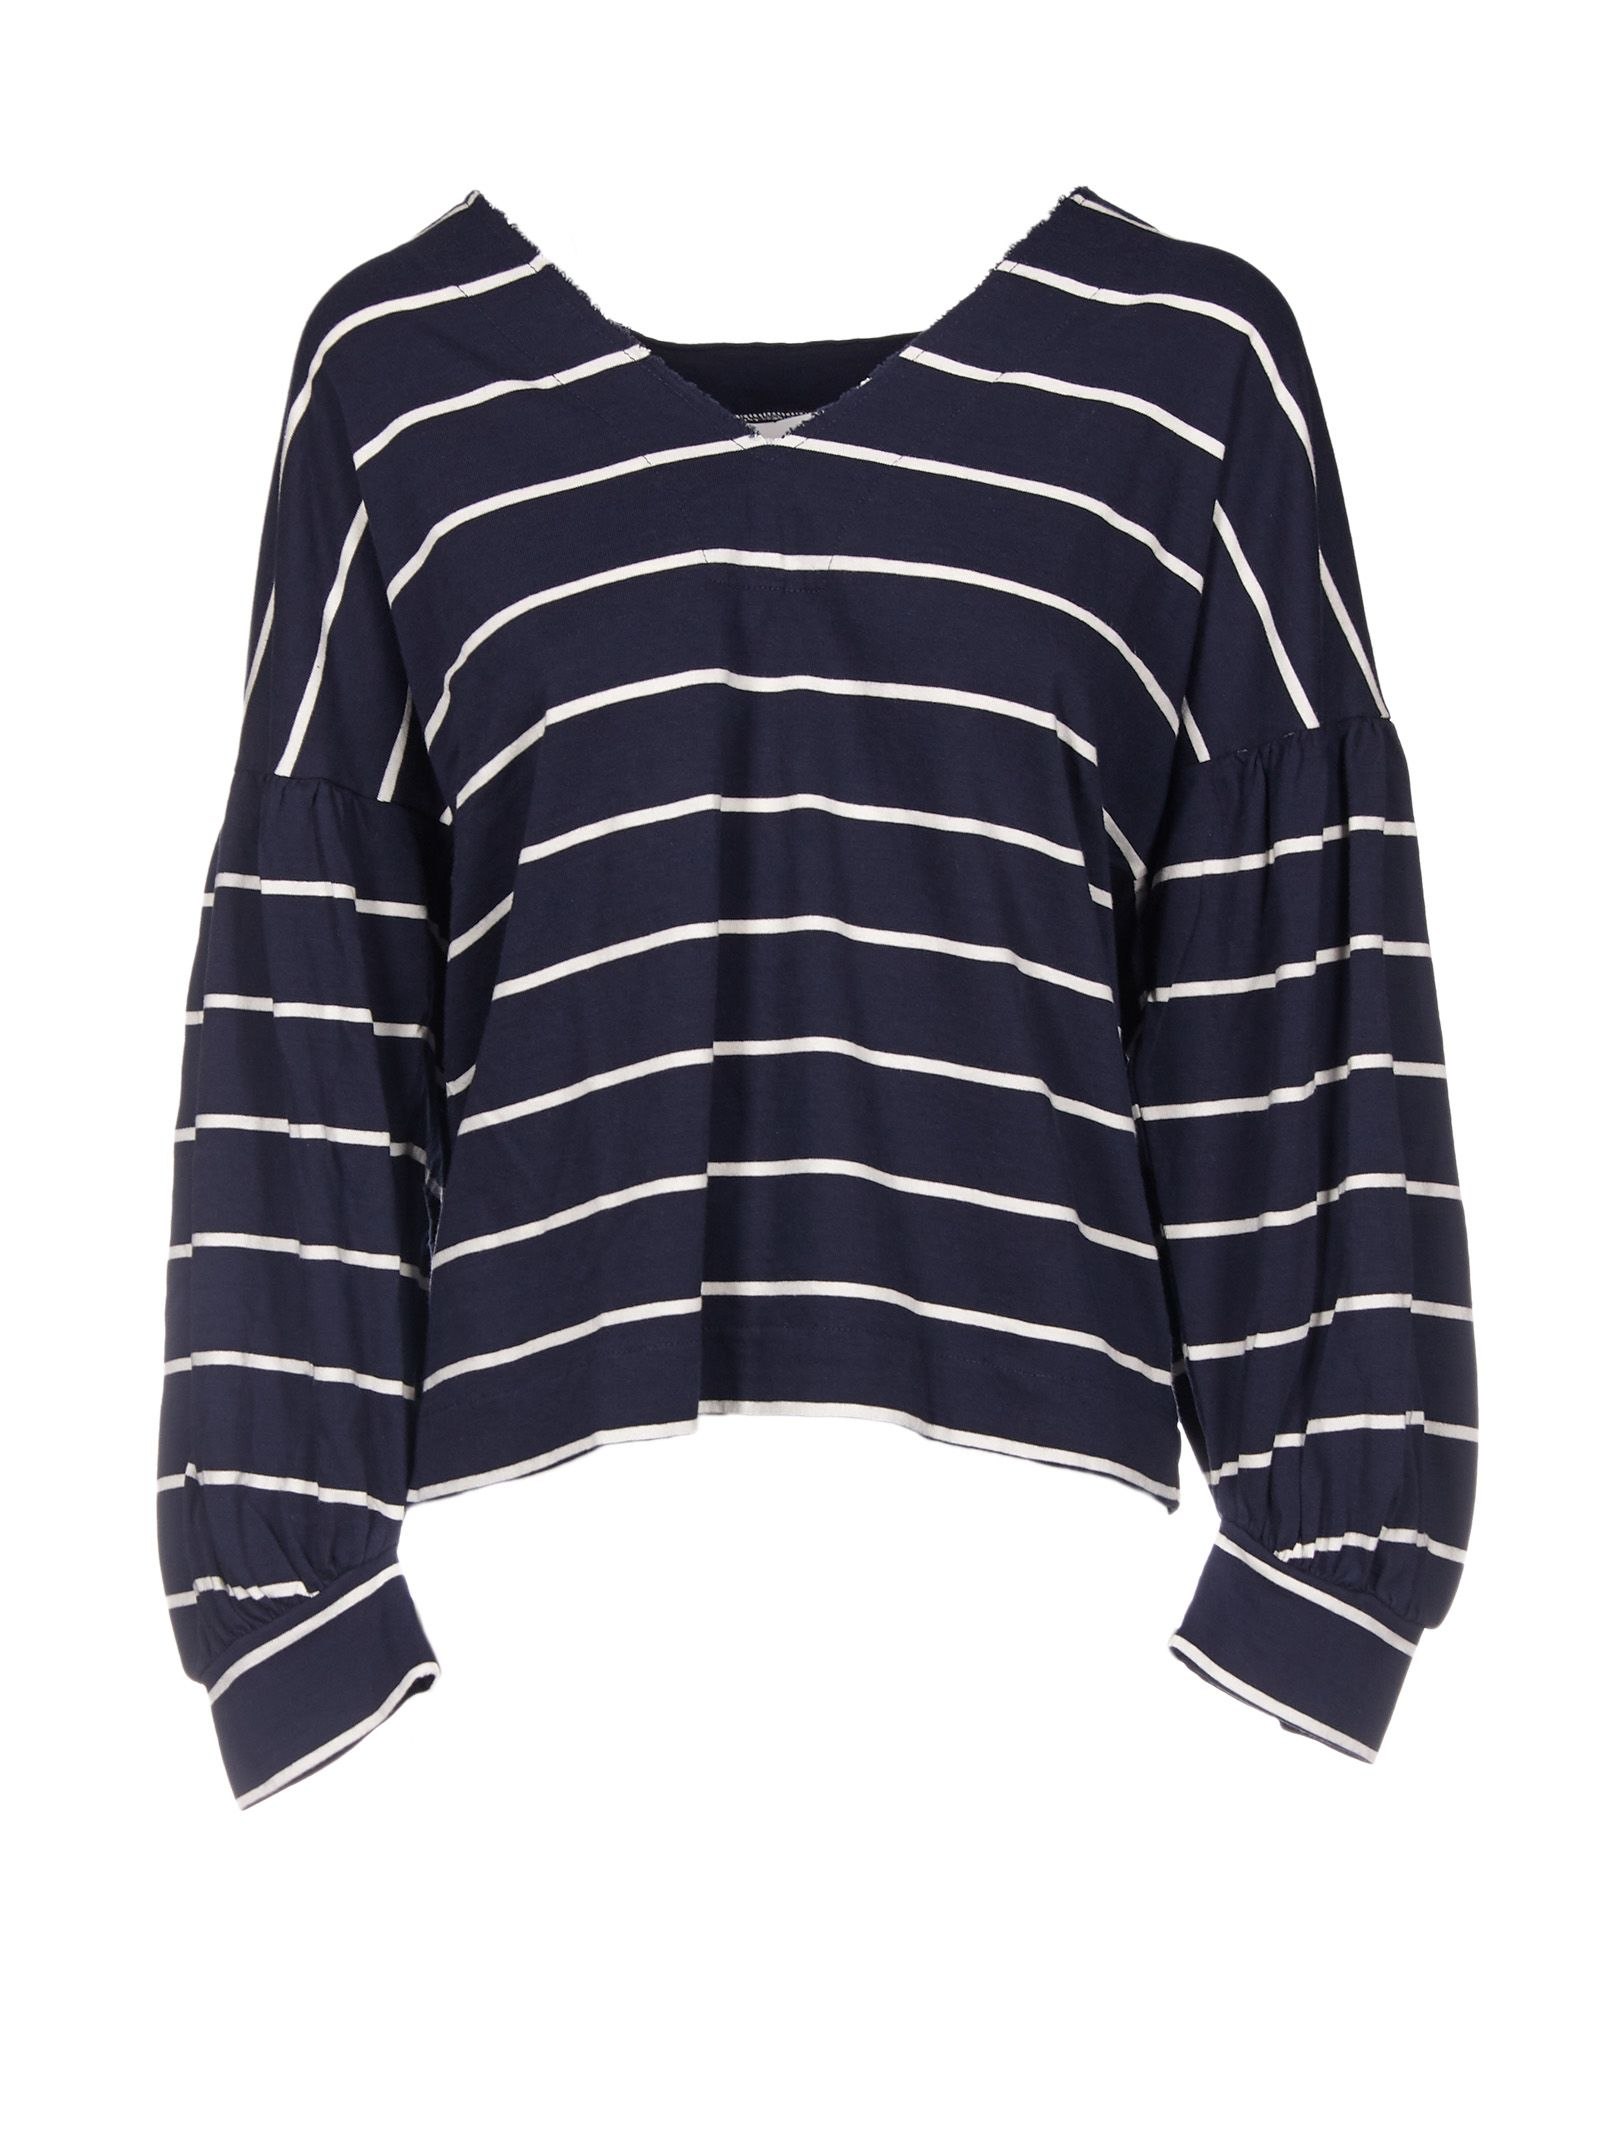 8pm female 8pm striped vneck longsleeved top